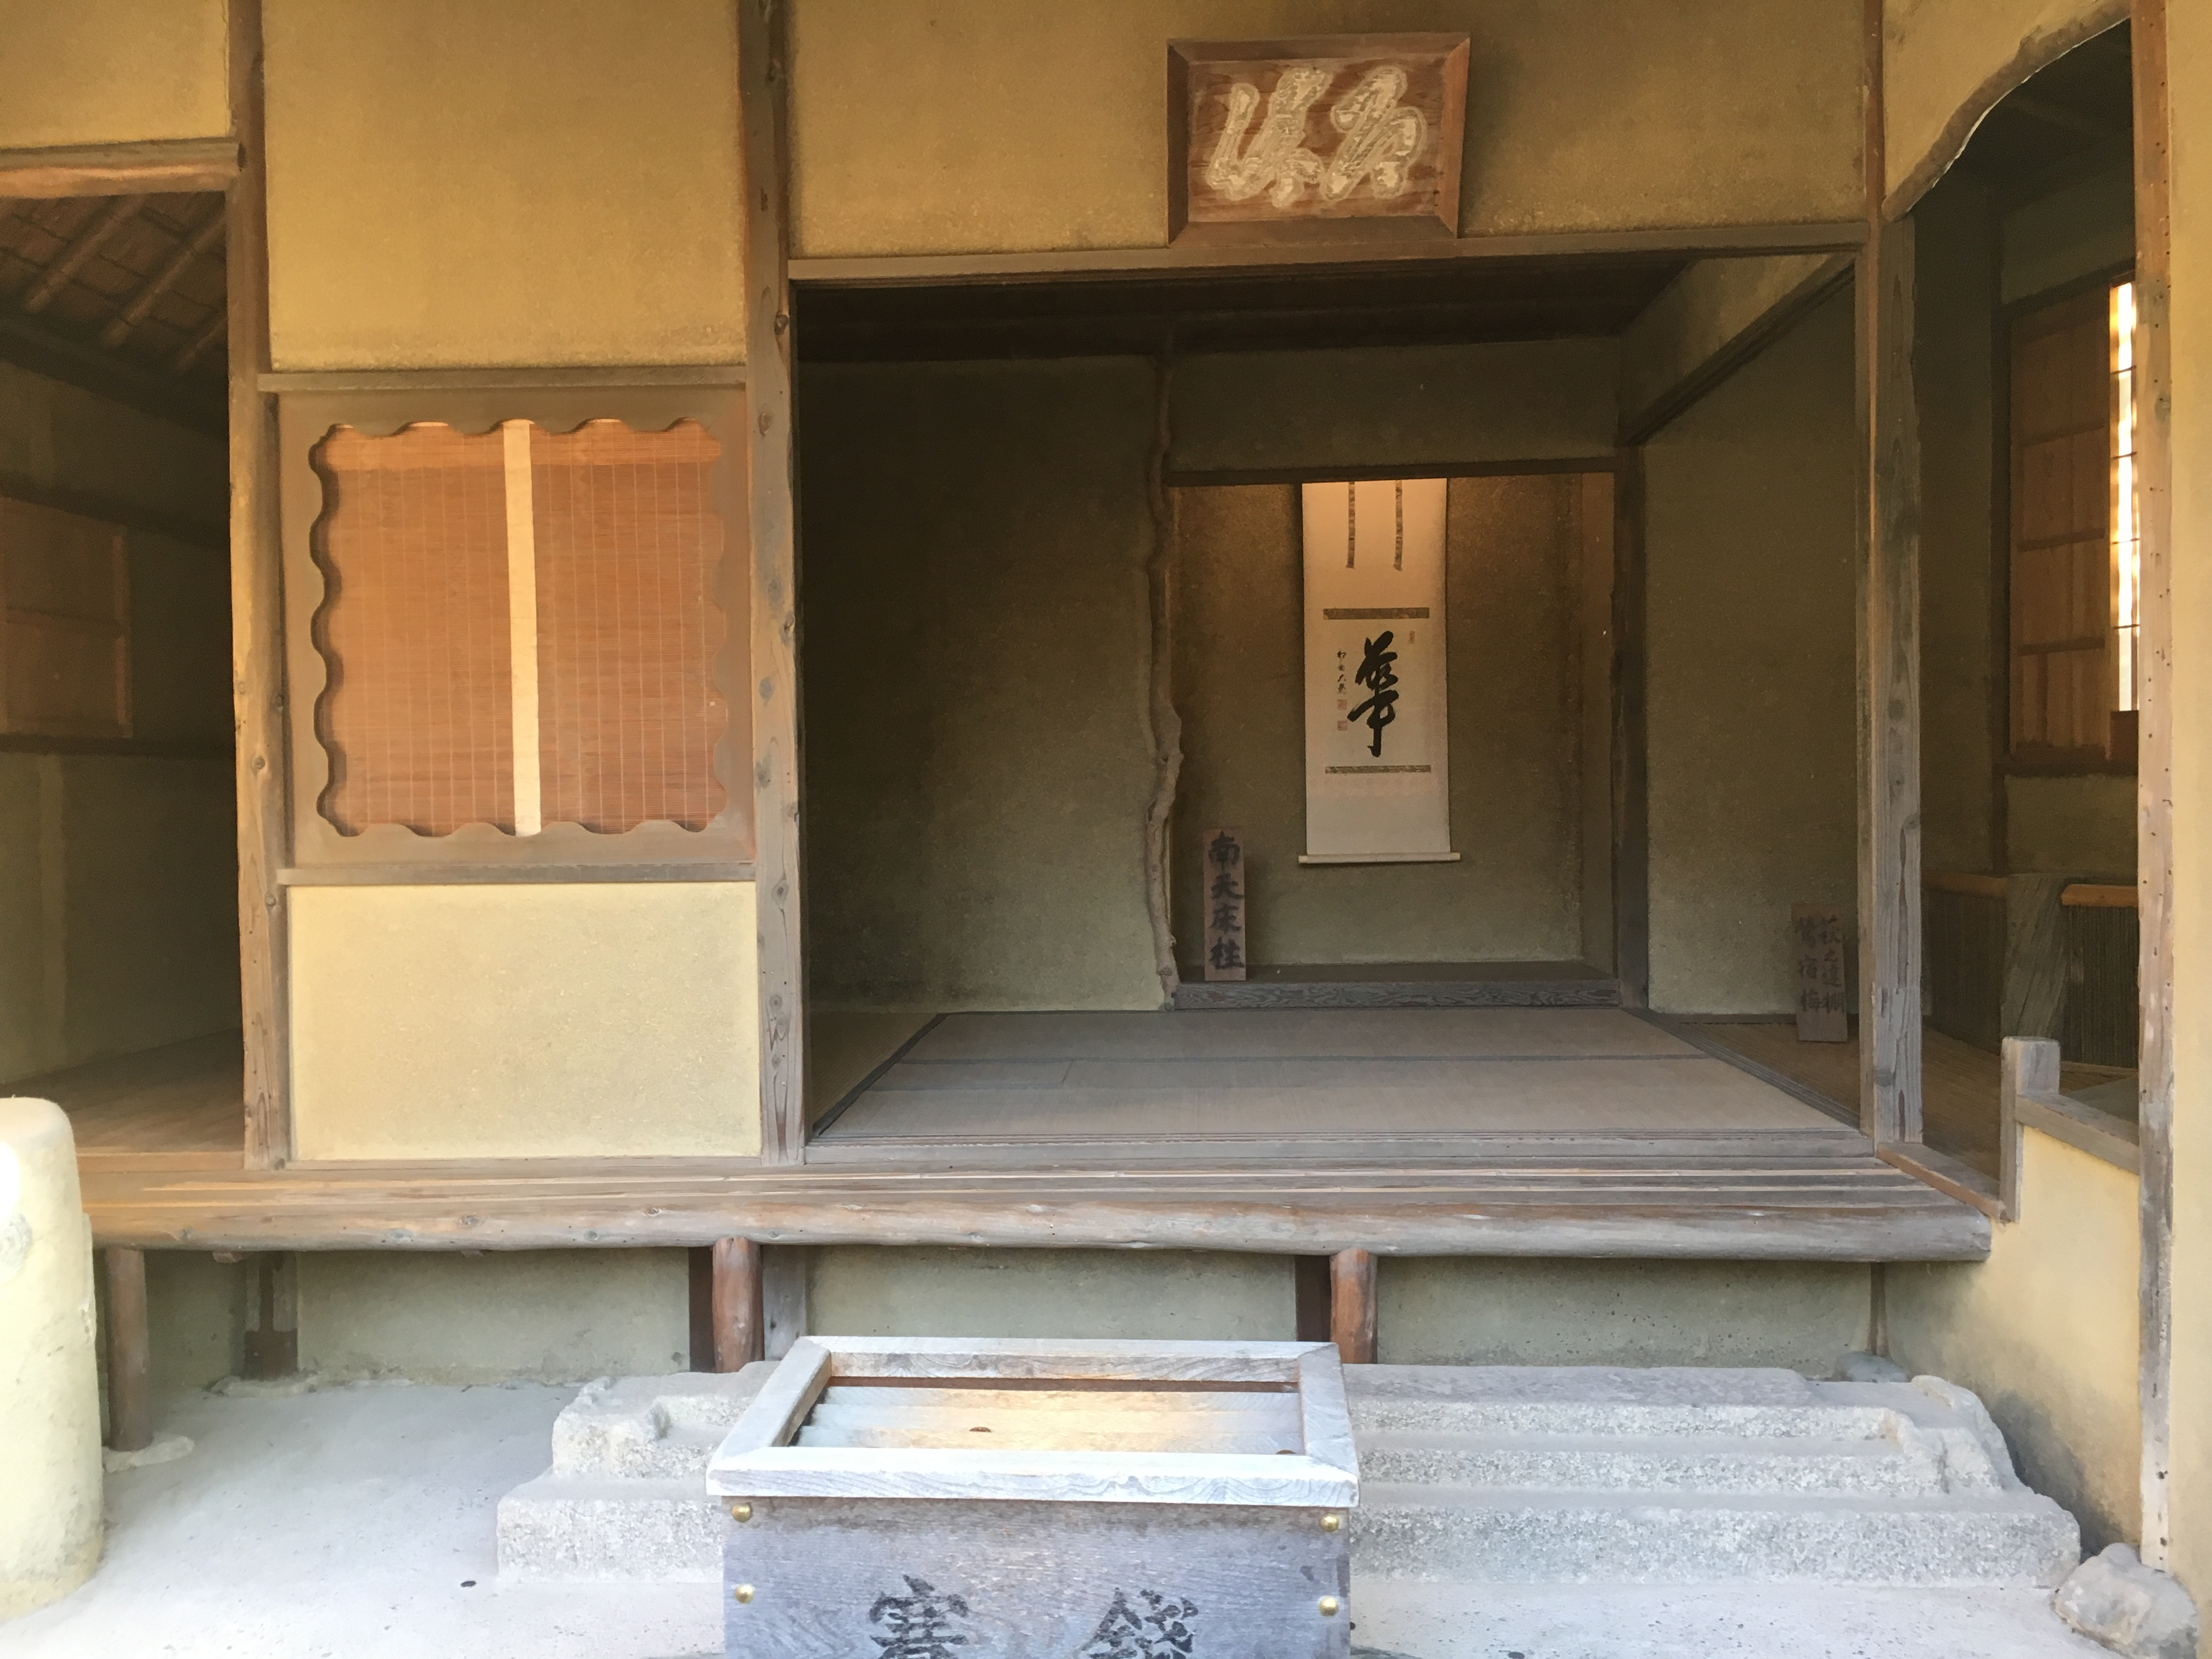 inside of Japanese tea house with floors made of a special wood